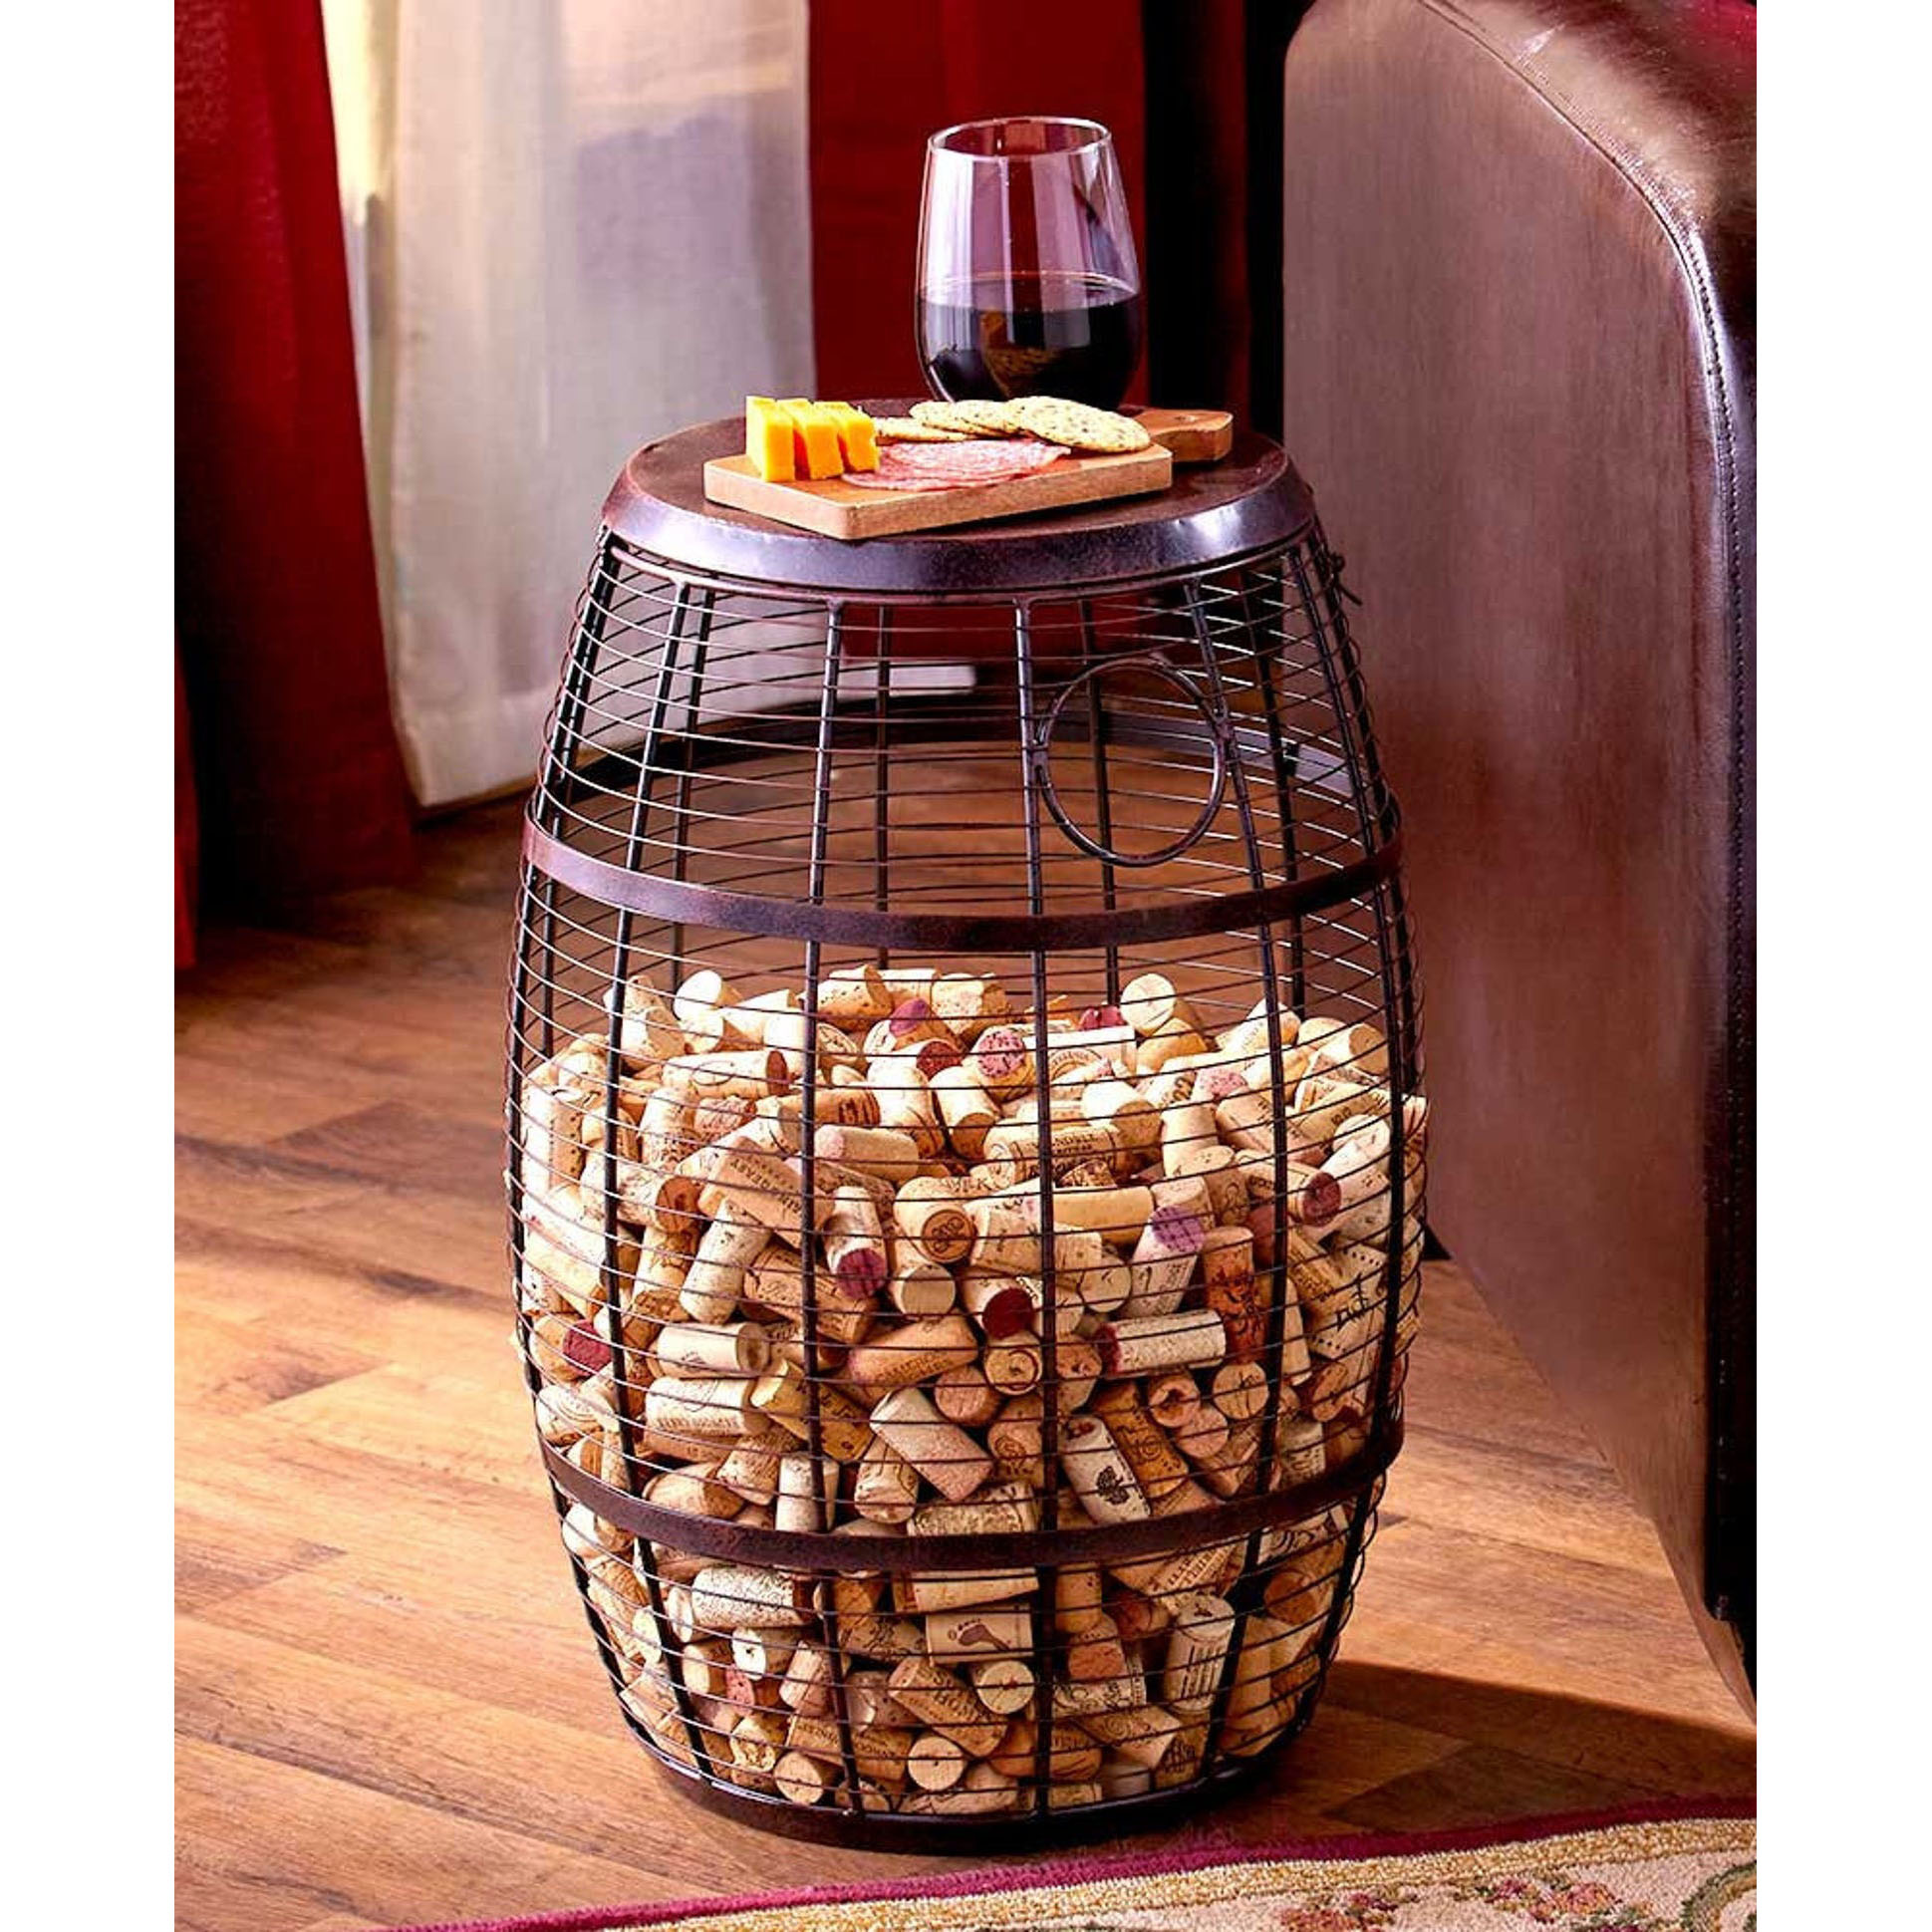 Better Home Space Wine Cork Holder Accent Tables